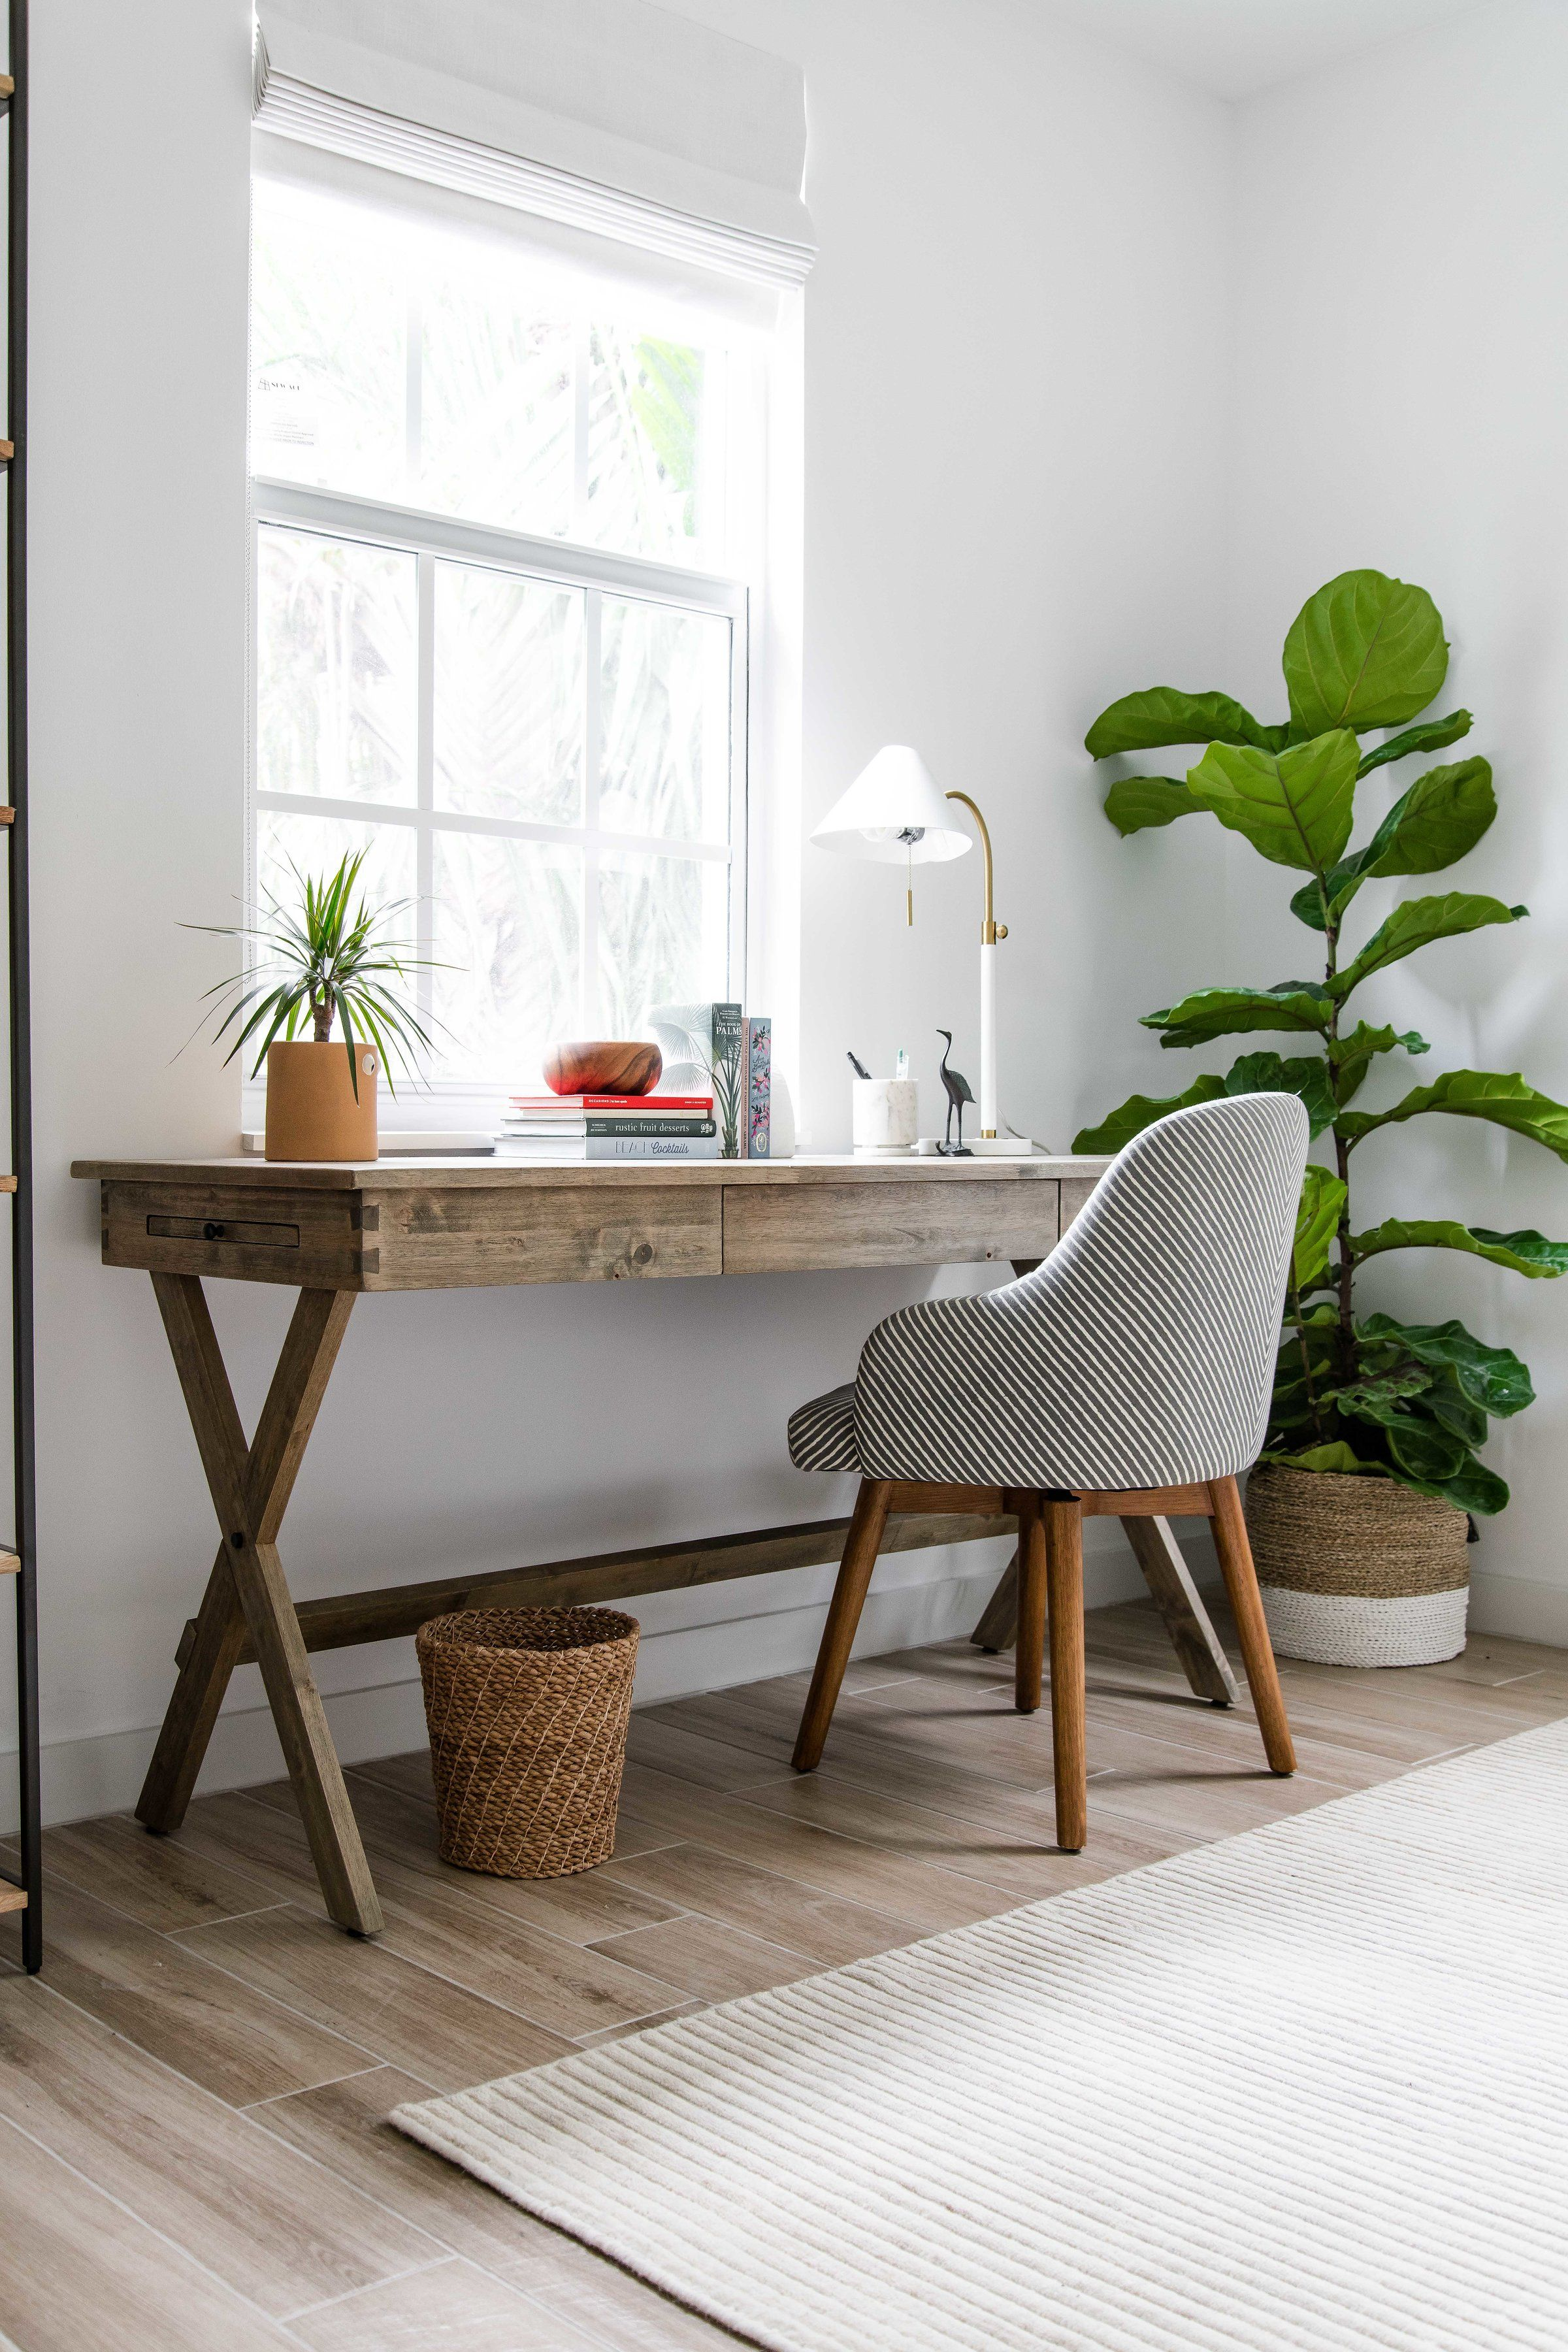 Table Habitat Occasion Project Peachy The Habitat Collective Interior Design Home